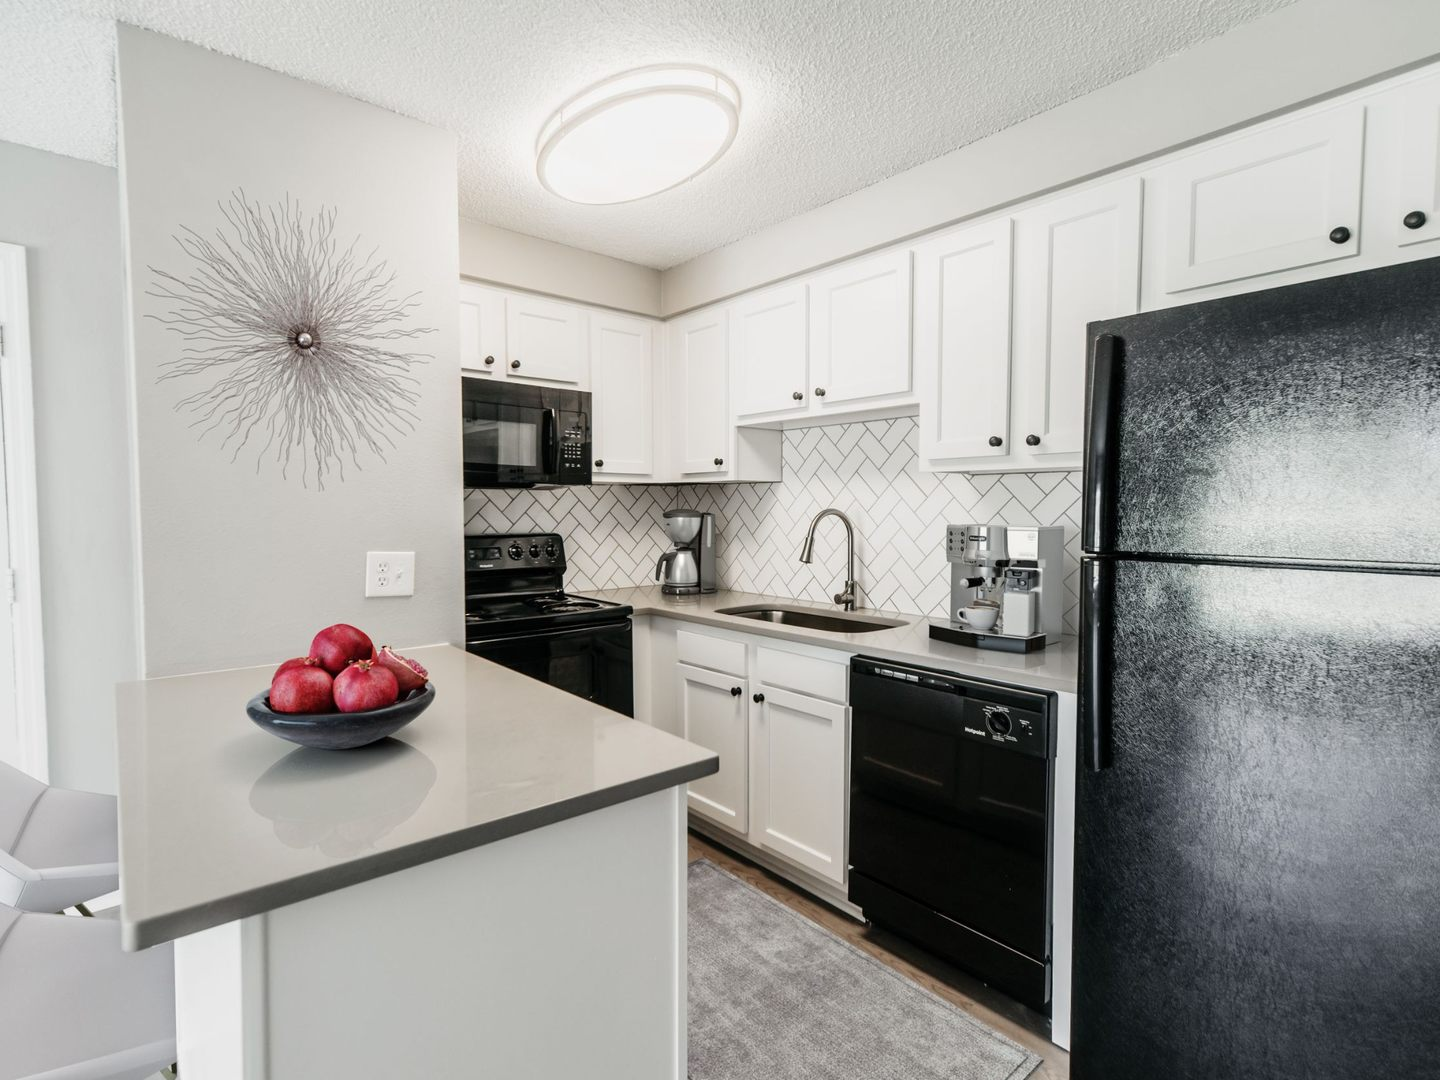 Apartment kitchen with black appliances and white cabinetry